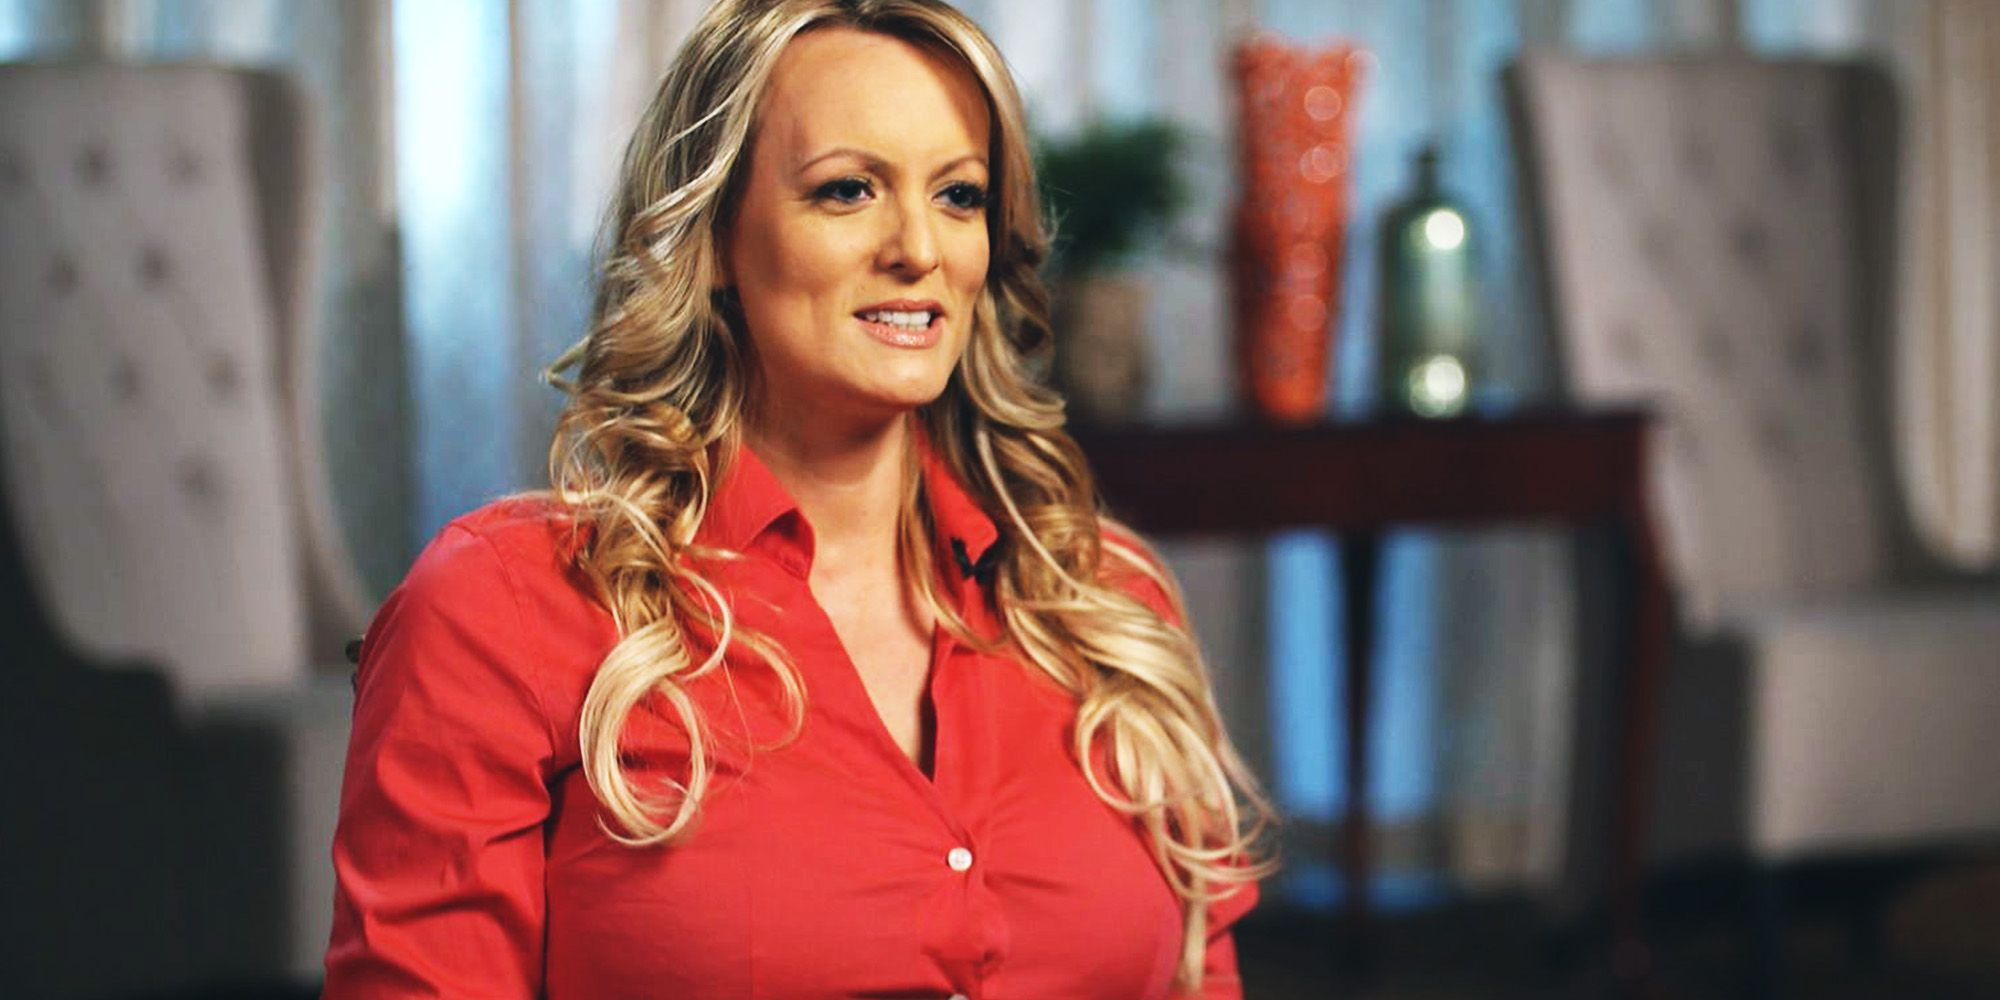 The Biggest Bombshells From the Stormy Daniels Interview